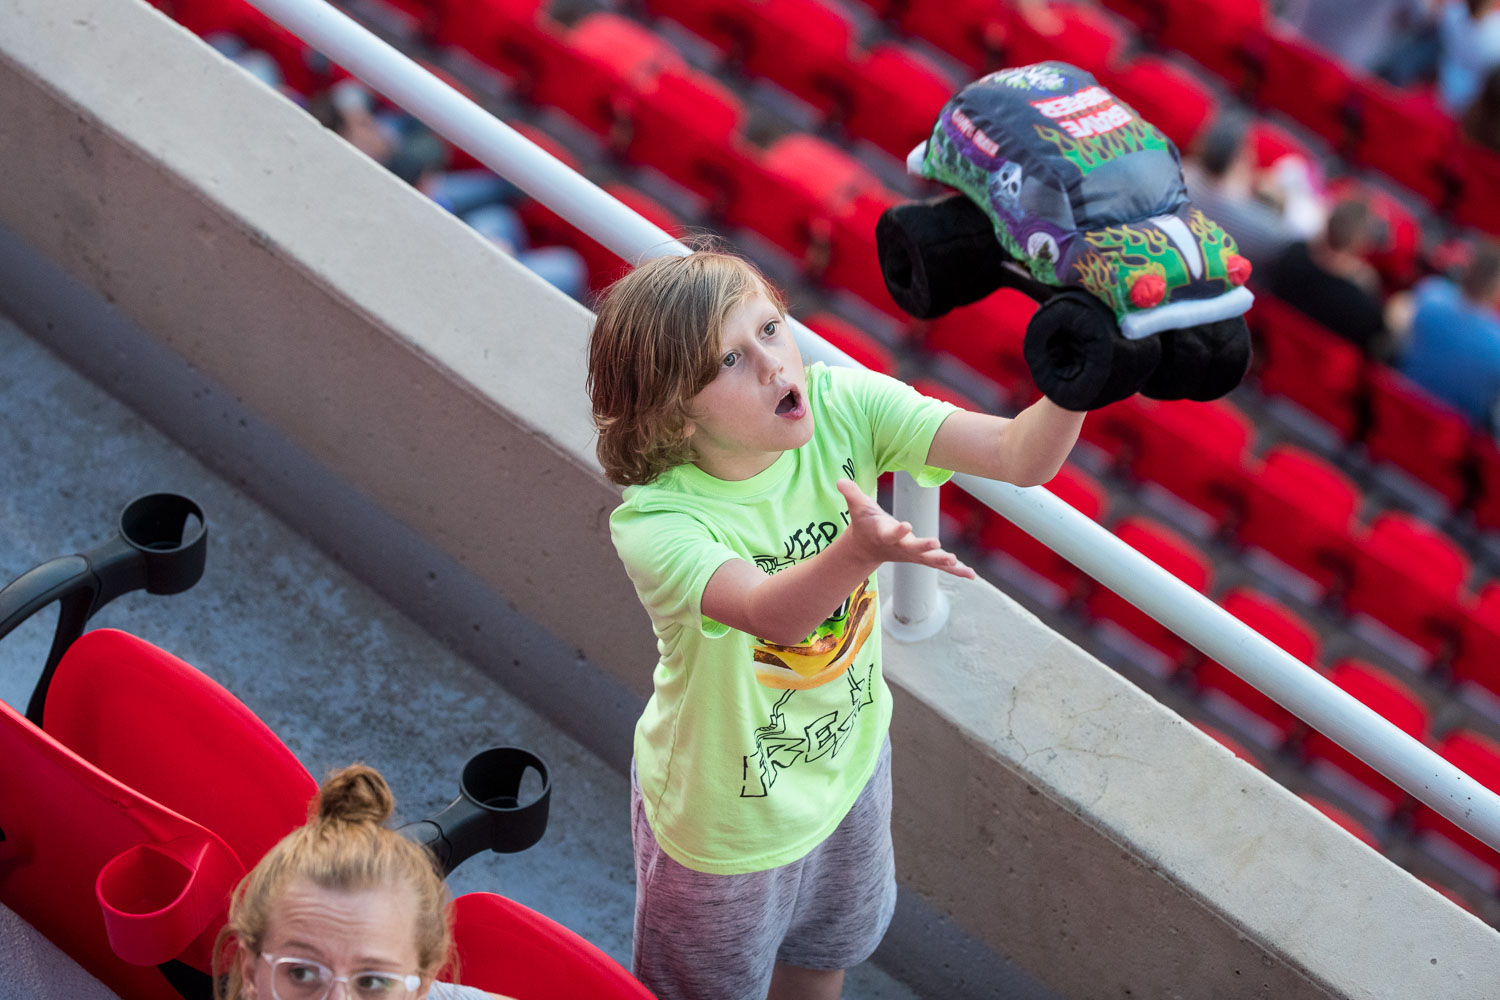 A young fan tosses a stuffed Gravedigger plush in the air during Monster Jam at GEHA Field at Arrowhead on Saturday evening, June 26, 2021.